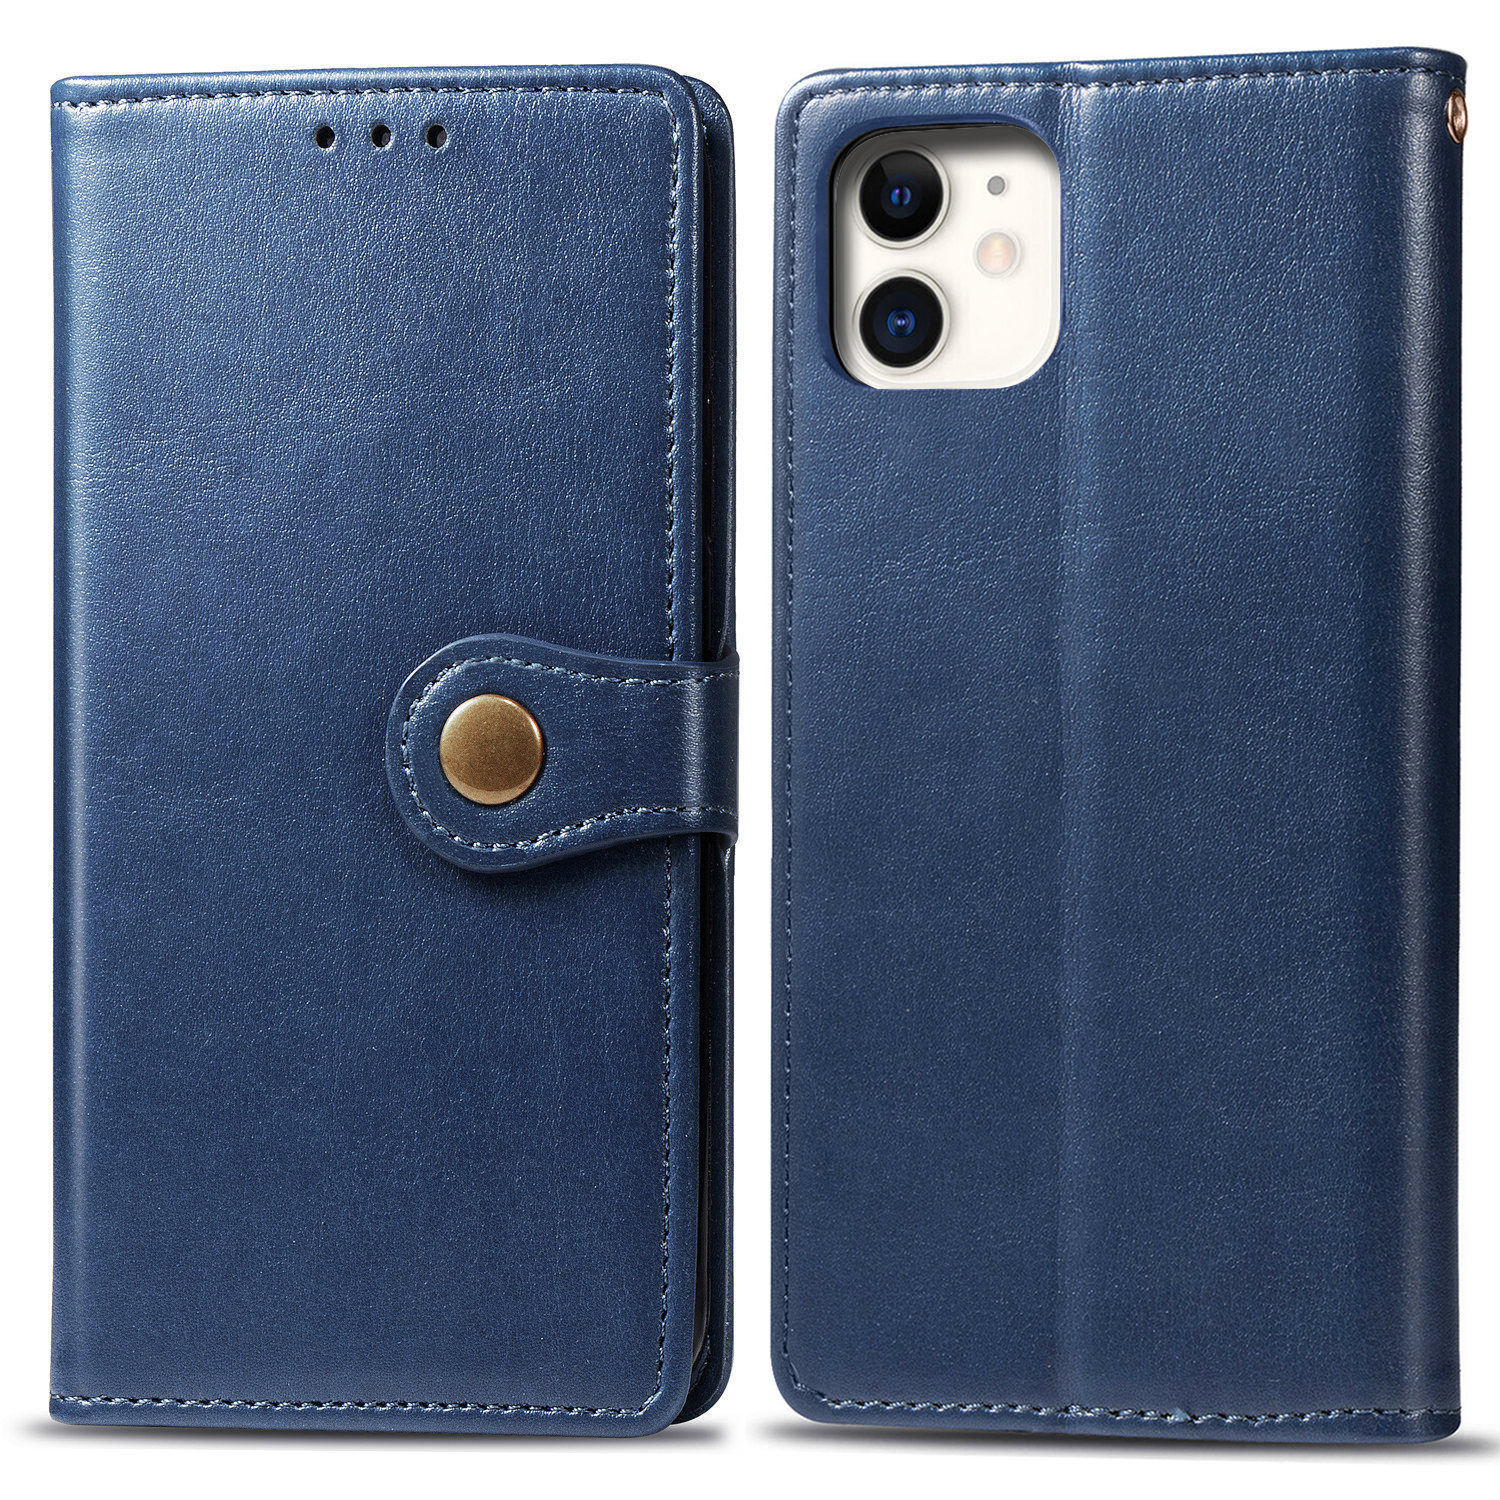 PU Leather Wallet <strong>Phone</strong> Case With Card Slot Cash Pocket Business Wallet <strong>Phone</strong> Case Housing For LG K30 For Motorola E6 Plus